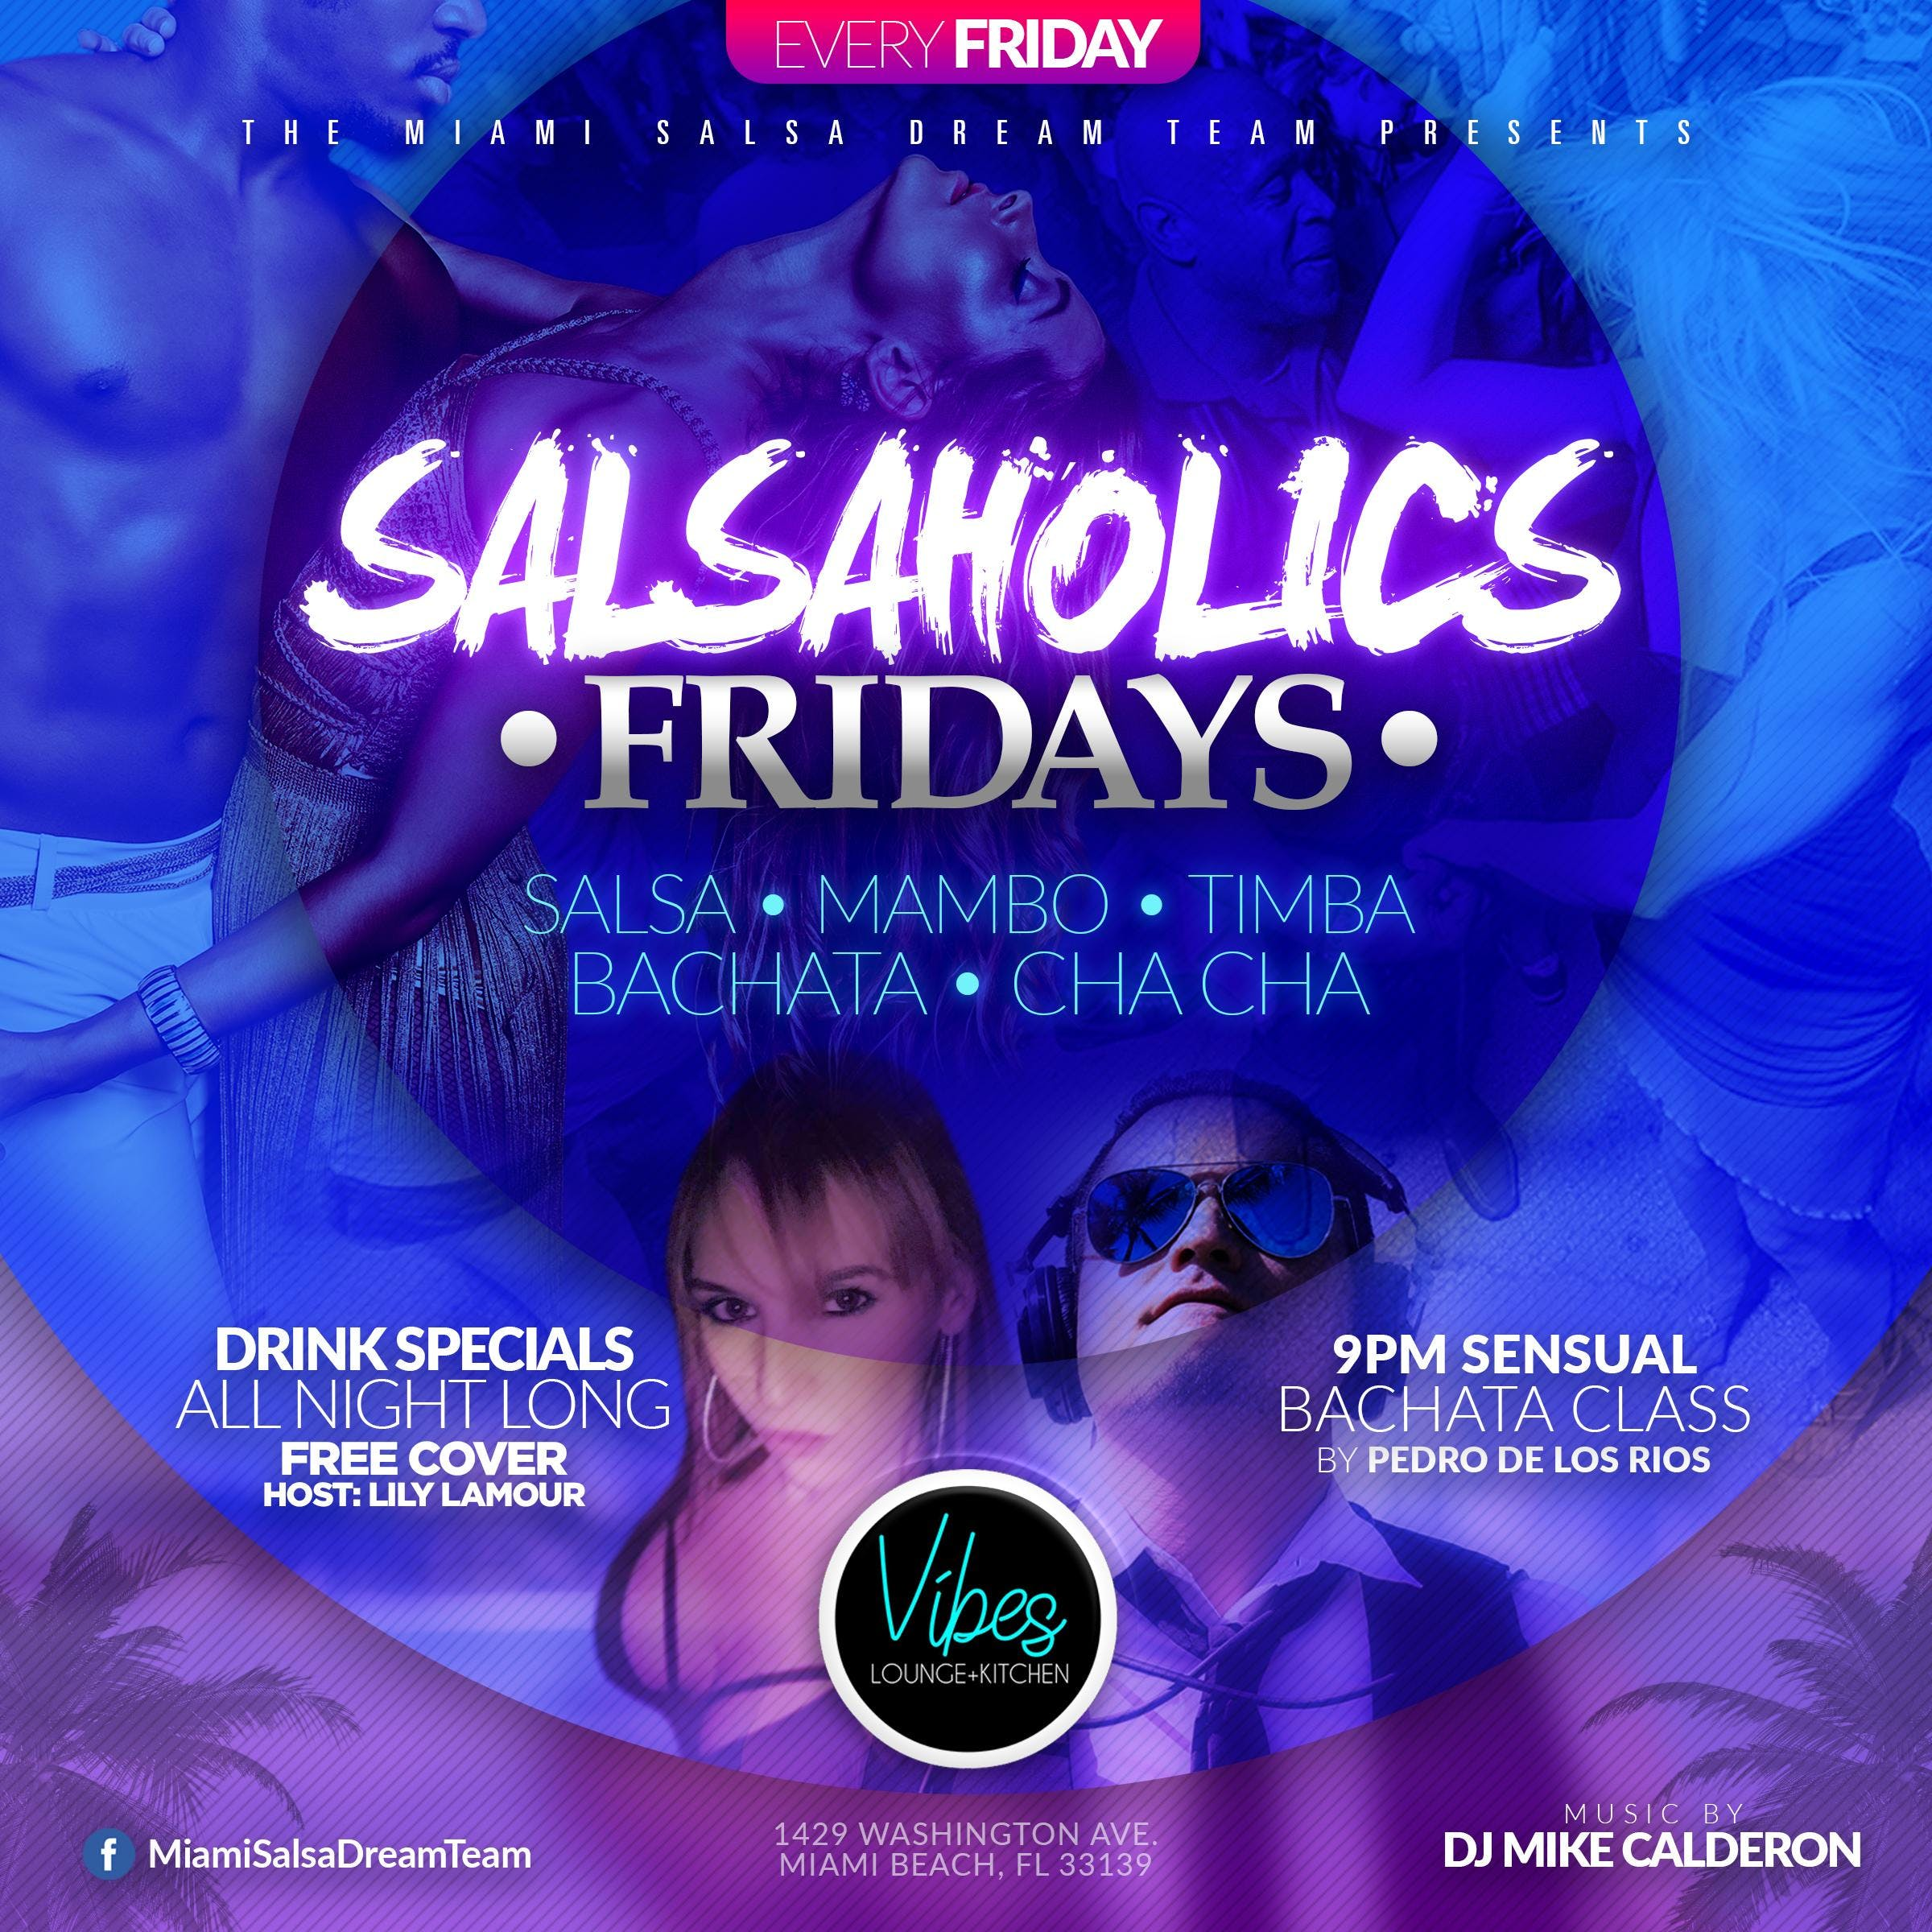 Salsaholics Fridays at Vibes Lounge